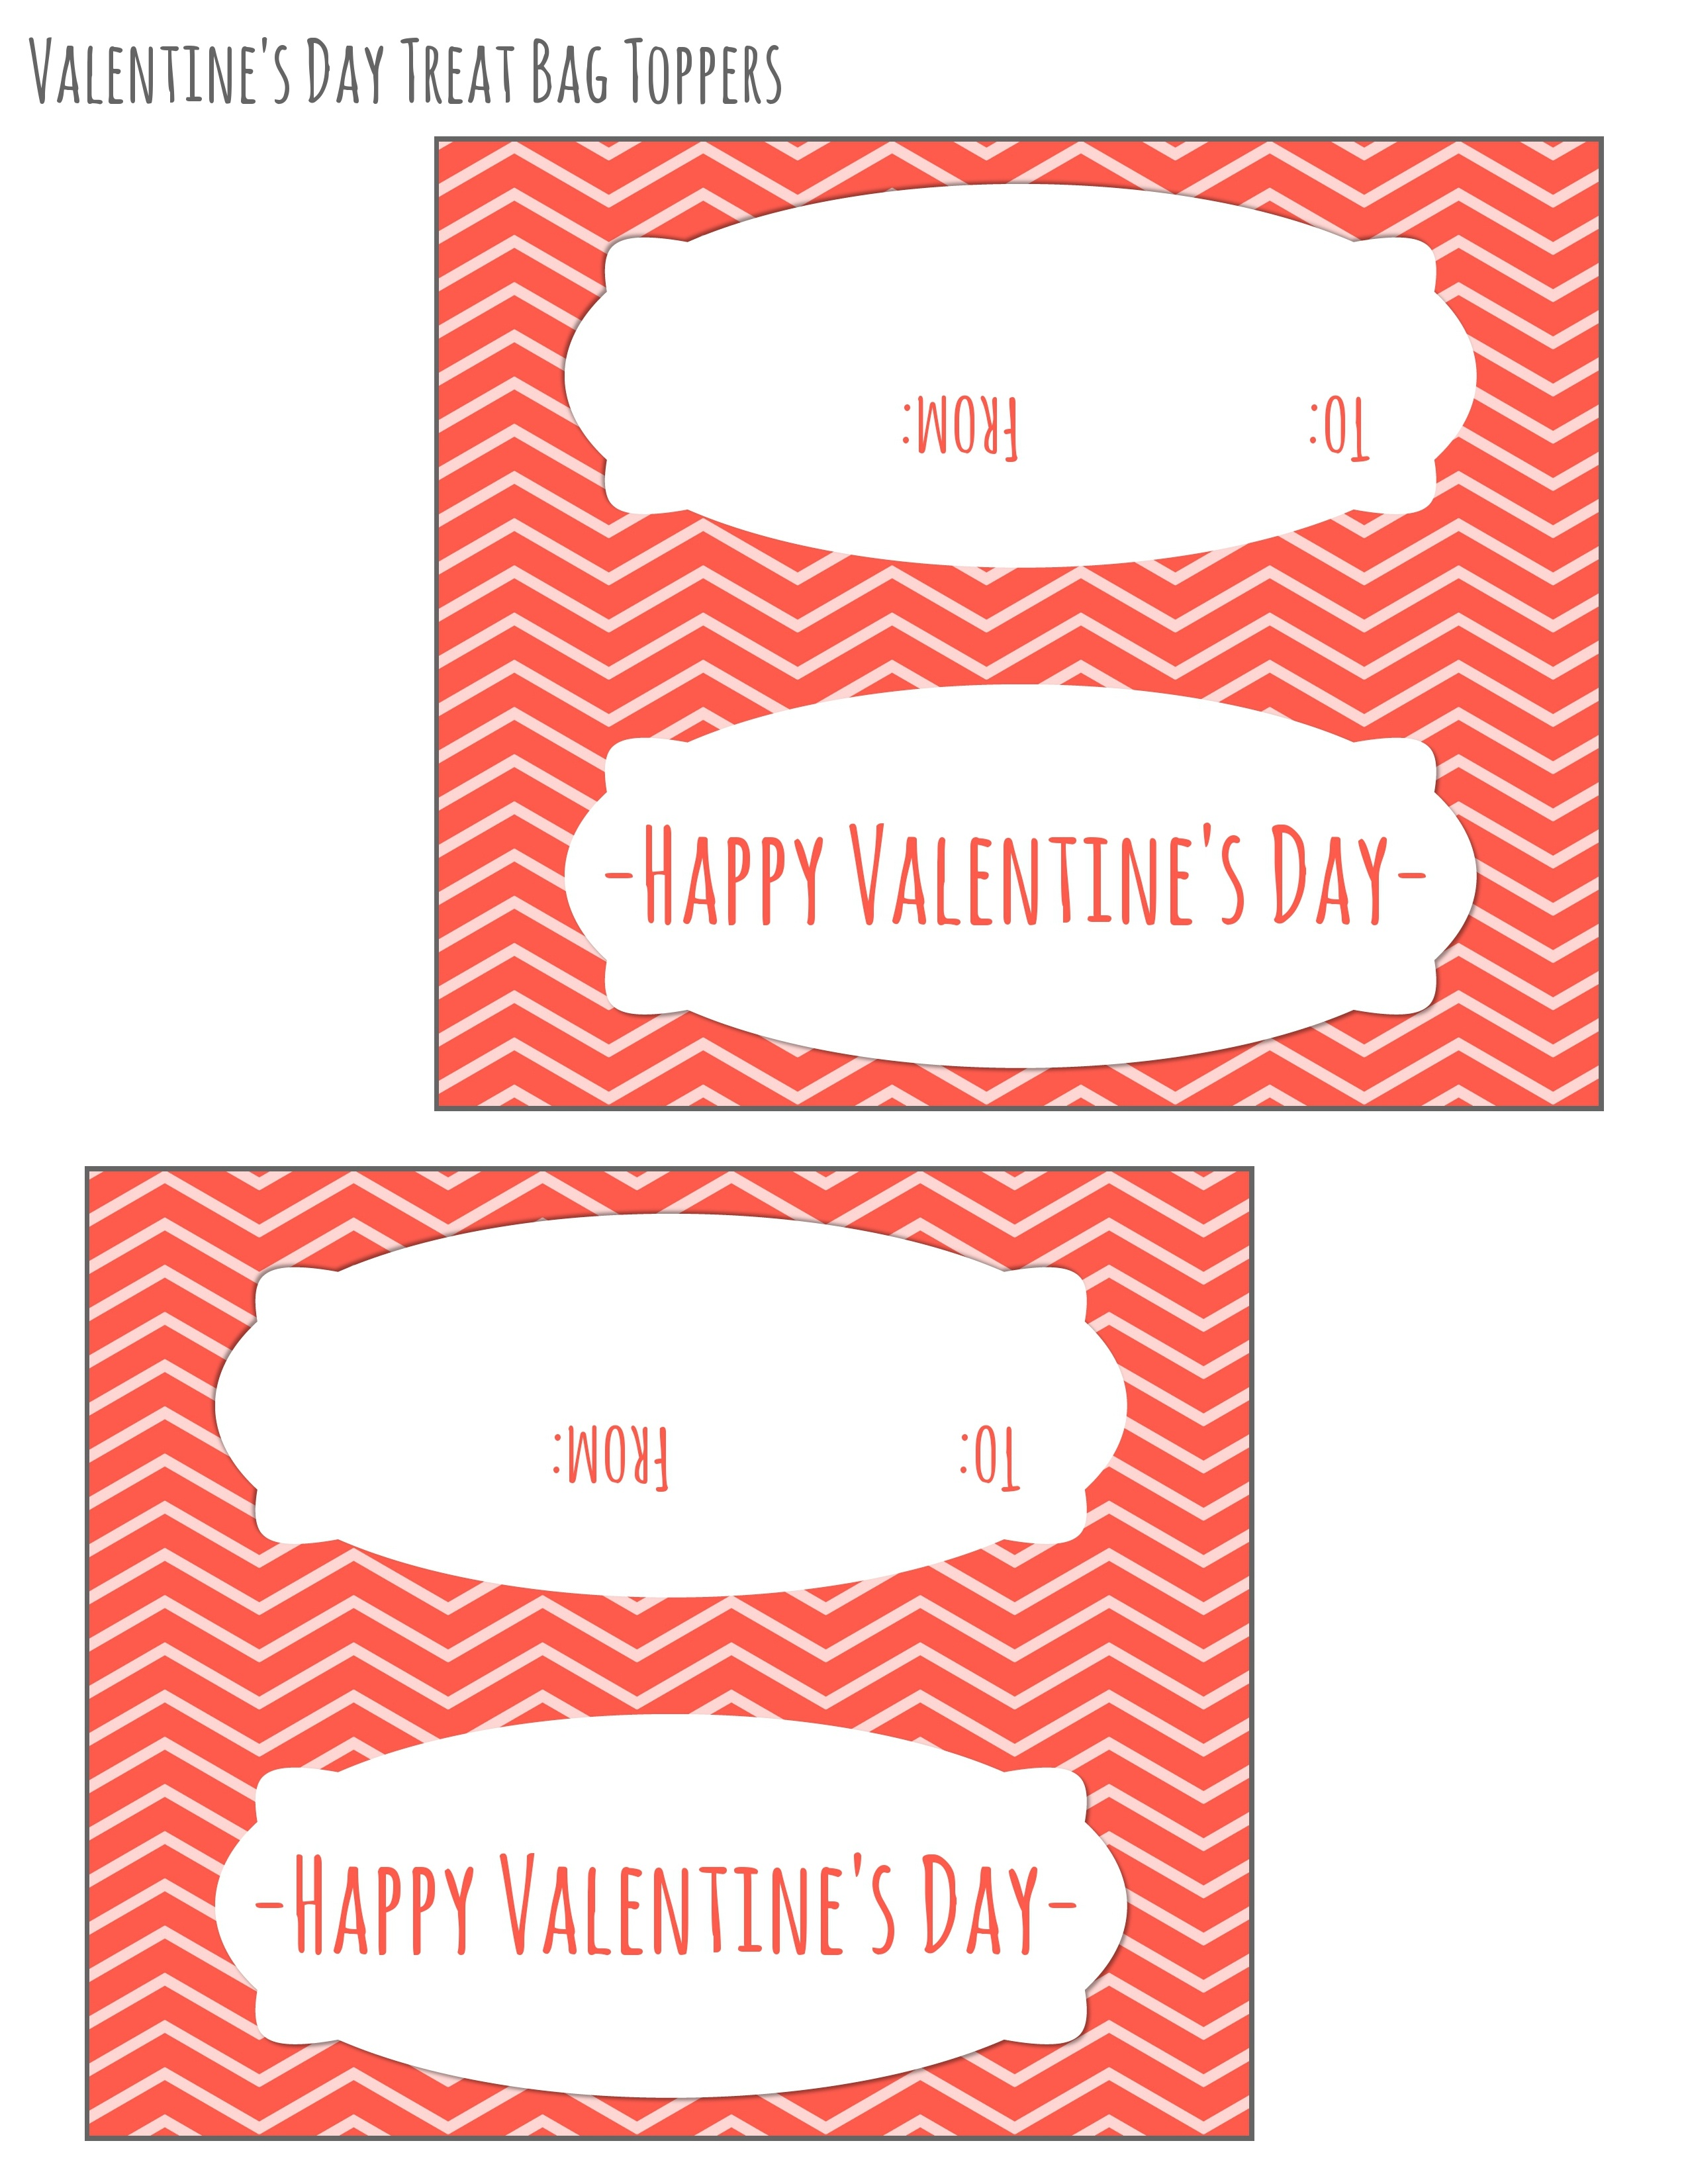 Free Printable Valentines Day Bag Toppers - Domestic Mommyhood - Free Printable Bag Toppers